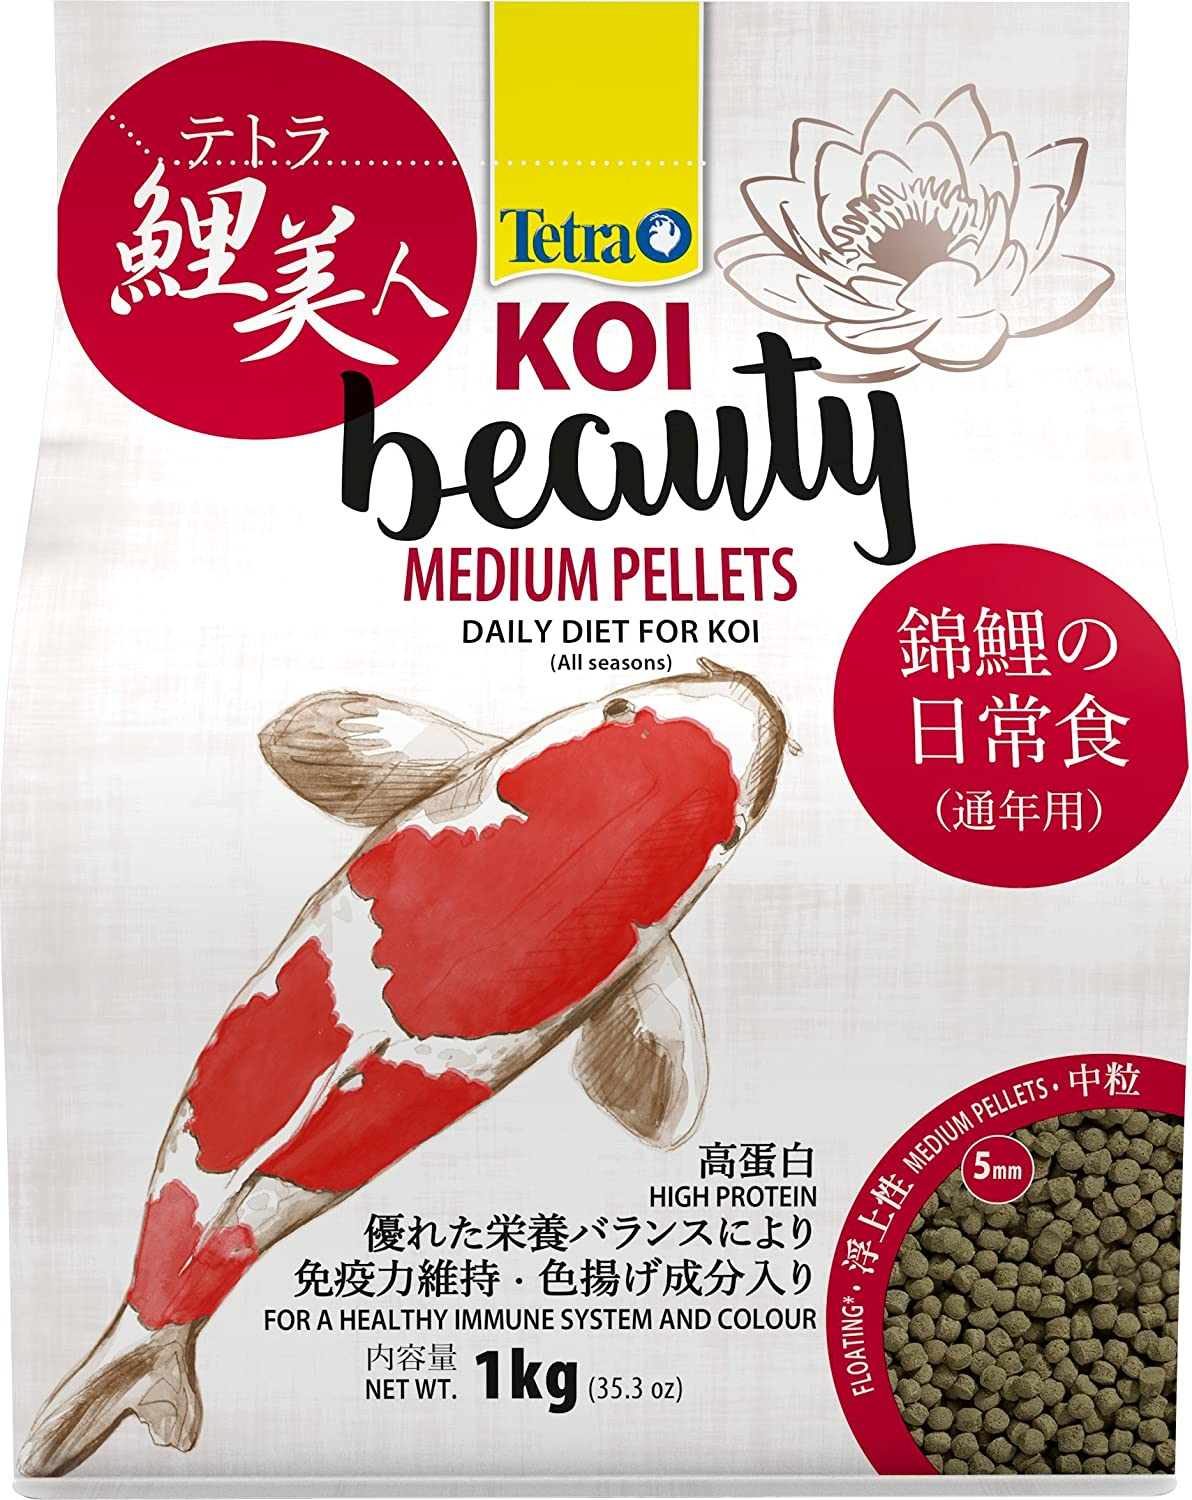 Tetra Koi Beauty Premium Main Food Pellets for Health and Colour Display 4004218242579